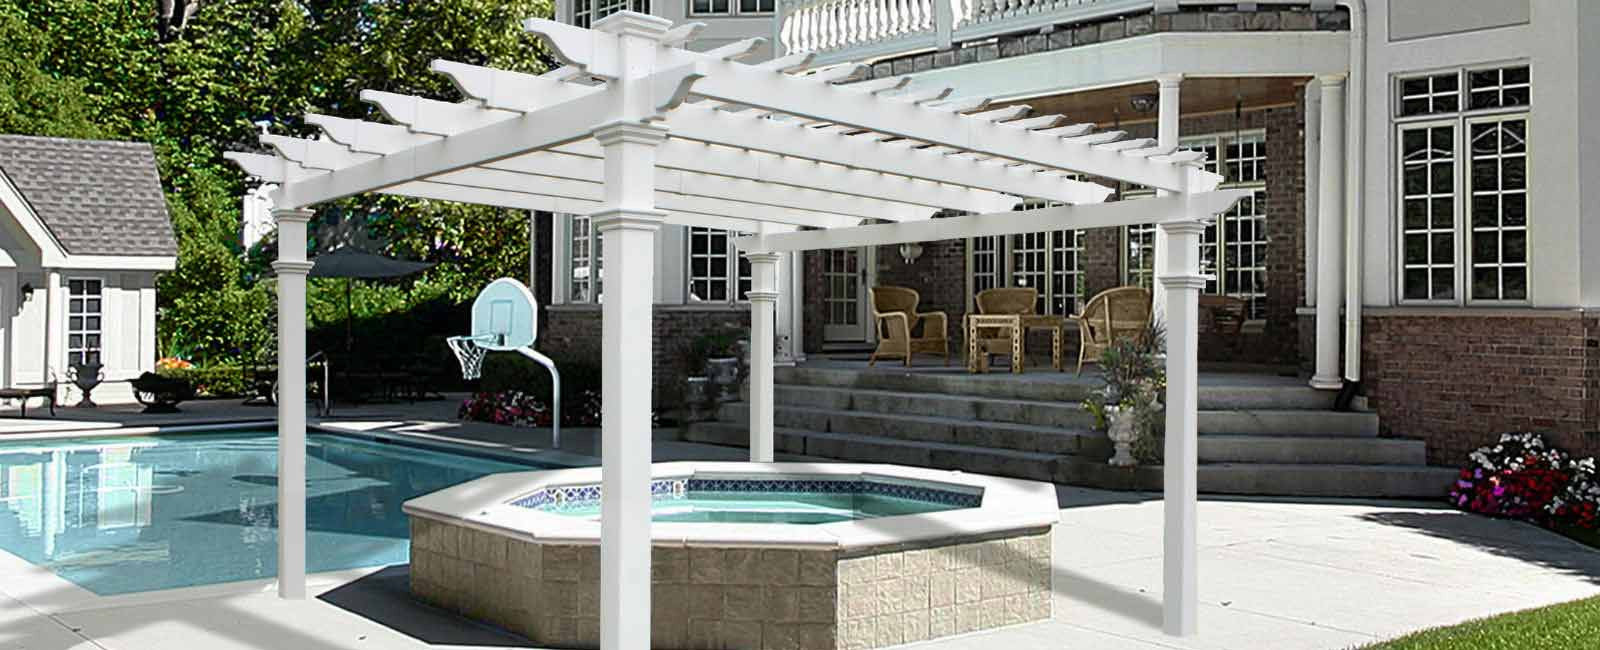 VINYL PATIO COVERS & PERGOLAS BUILT TO LAST